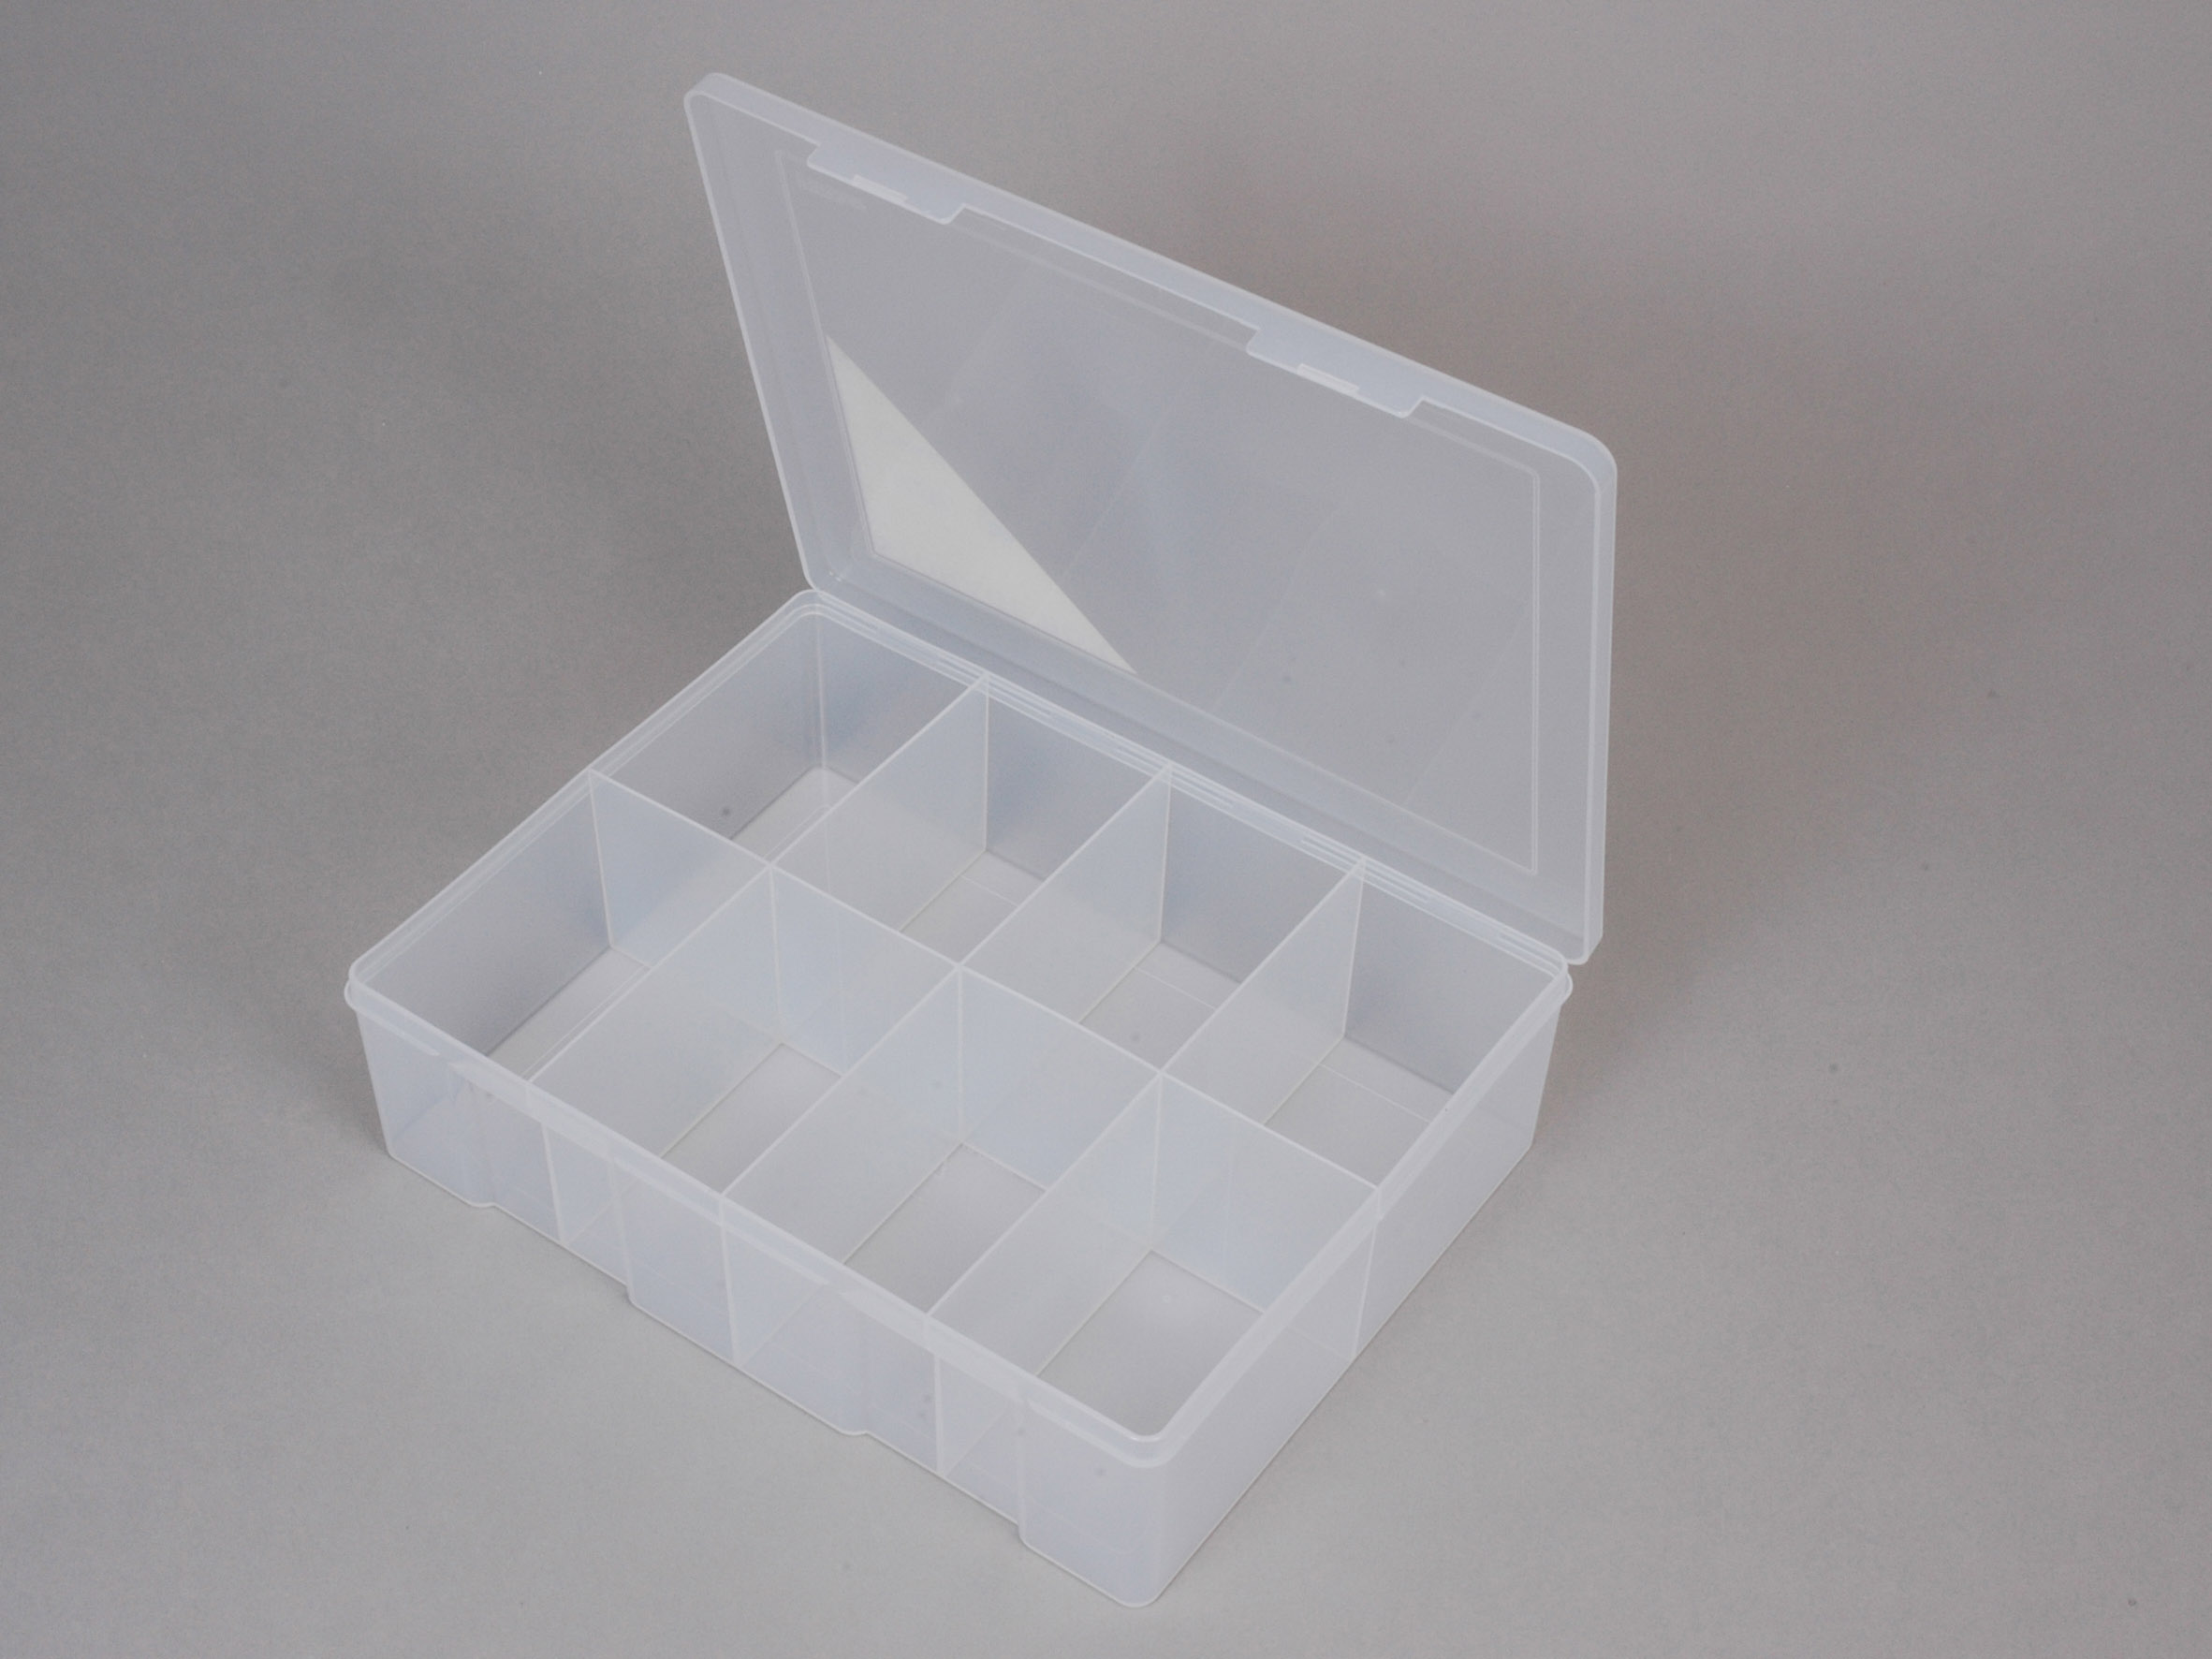 8 Compartment - Extra Large Extra Deep Storage Box